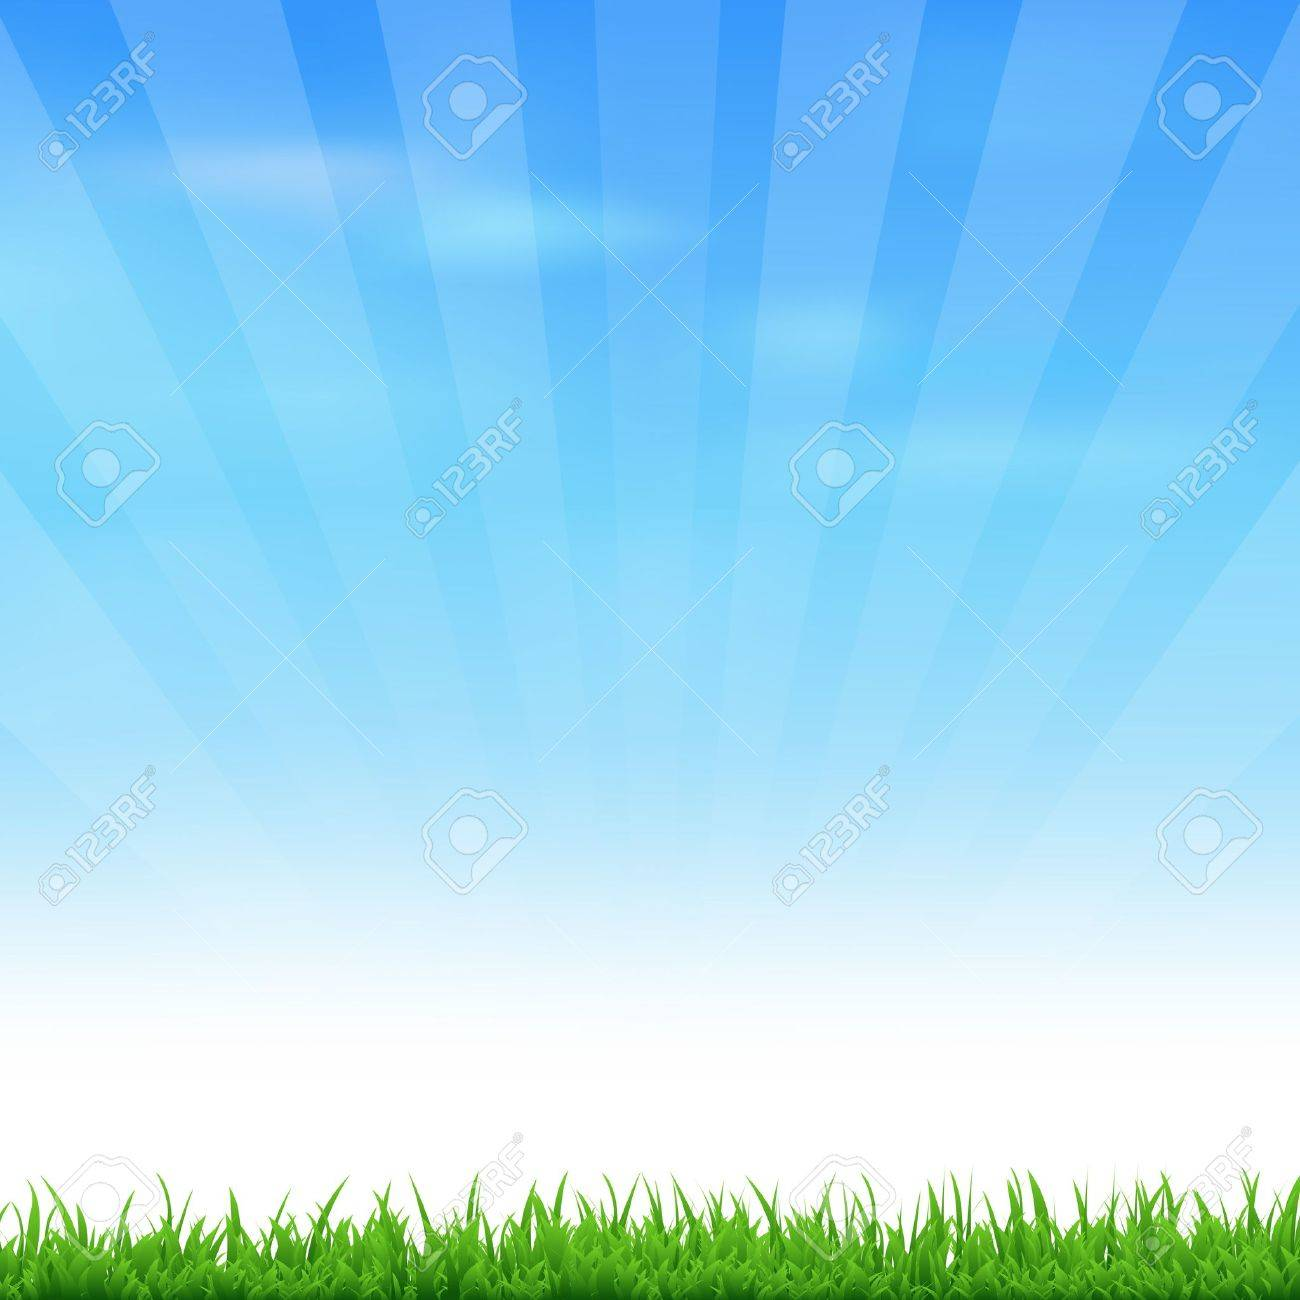 Landscape With Grass And Sky, Vector Illustration Stock Vector - 13762345